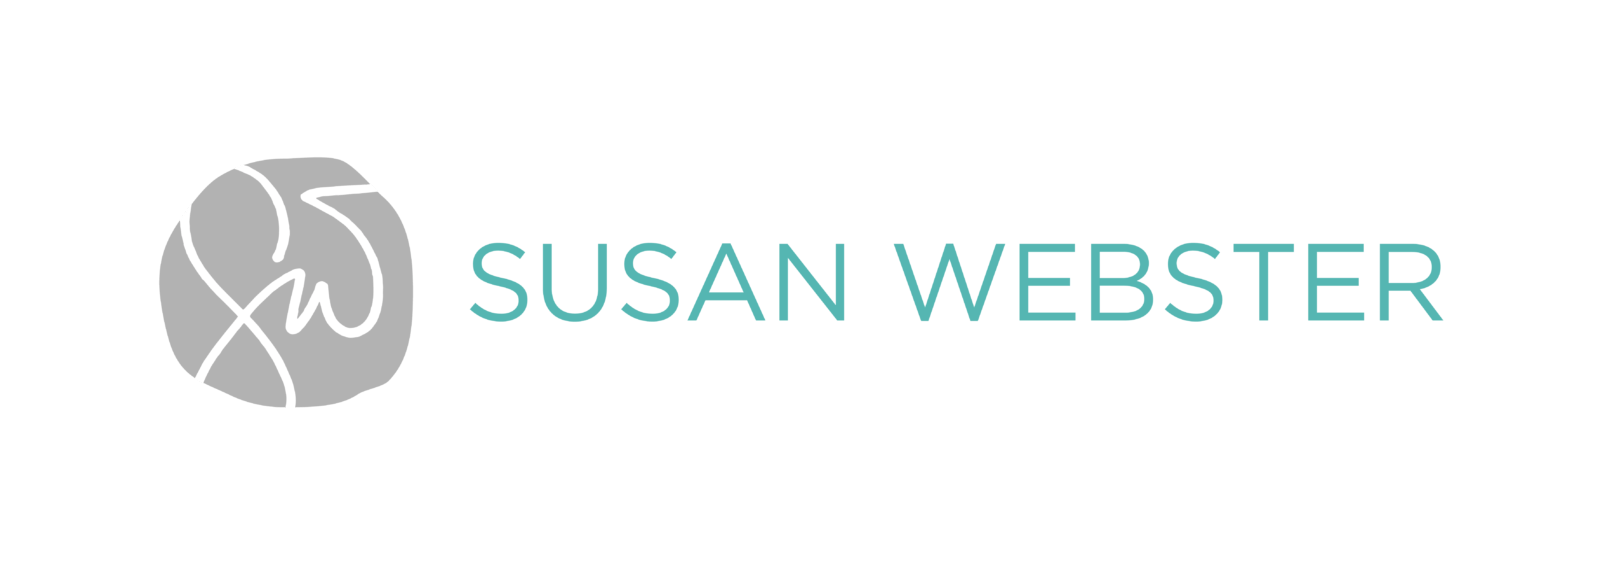 Susan Webster